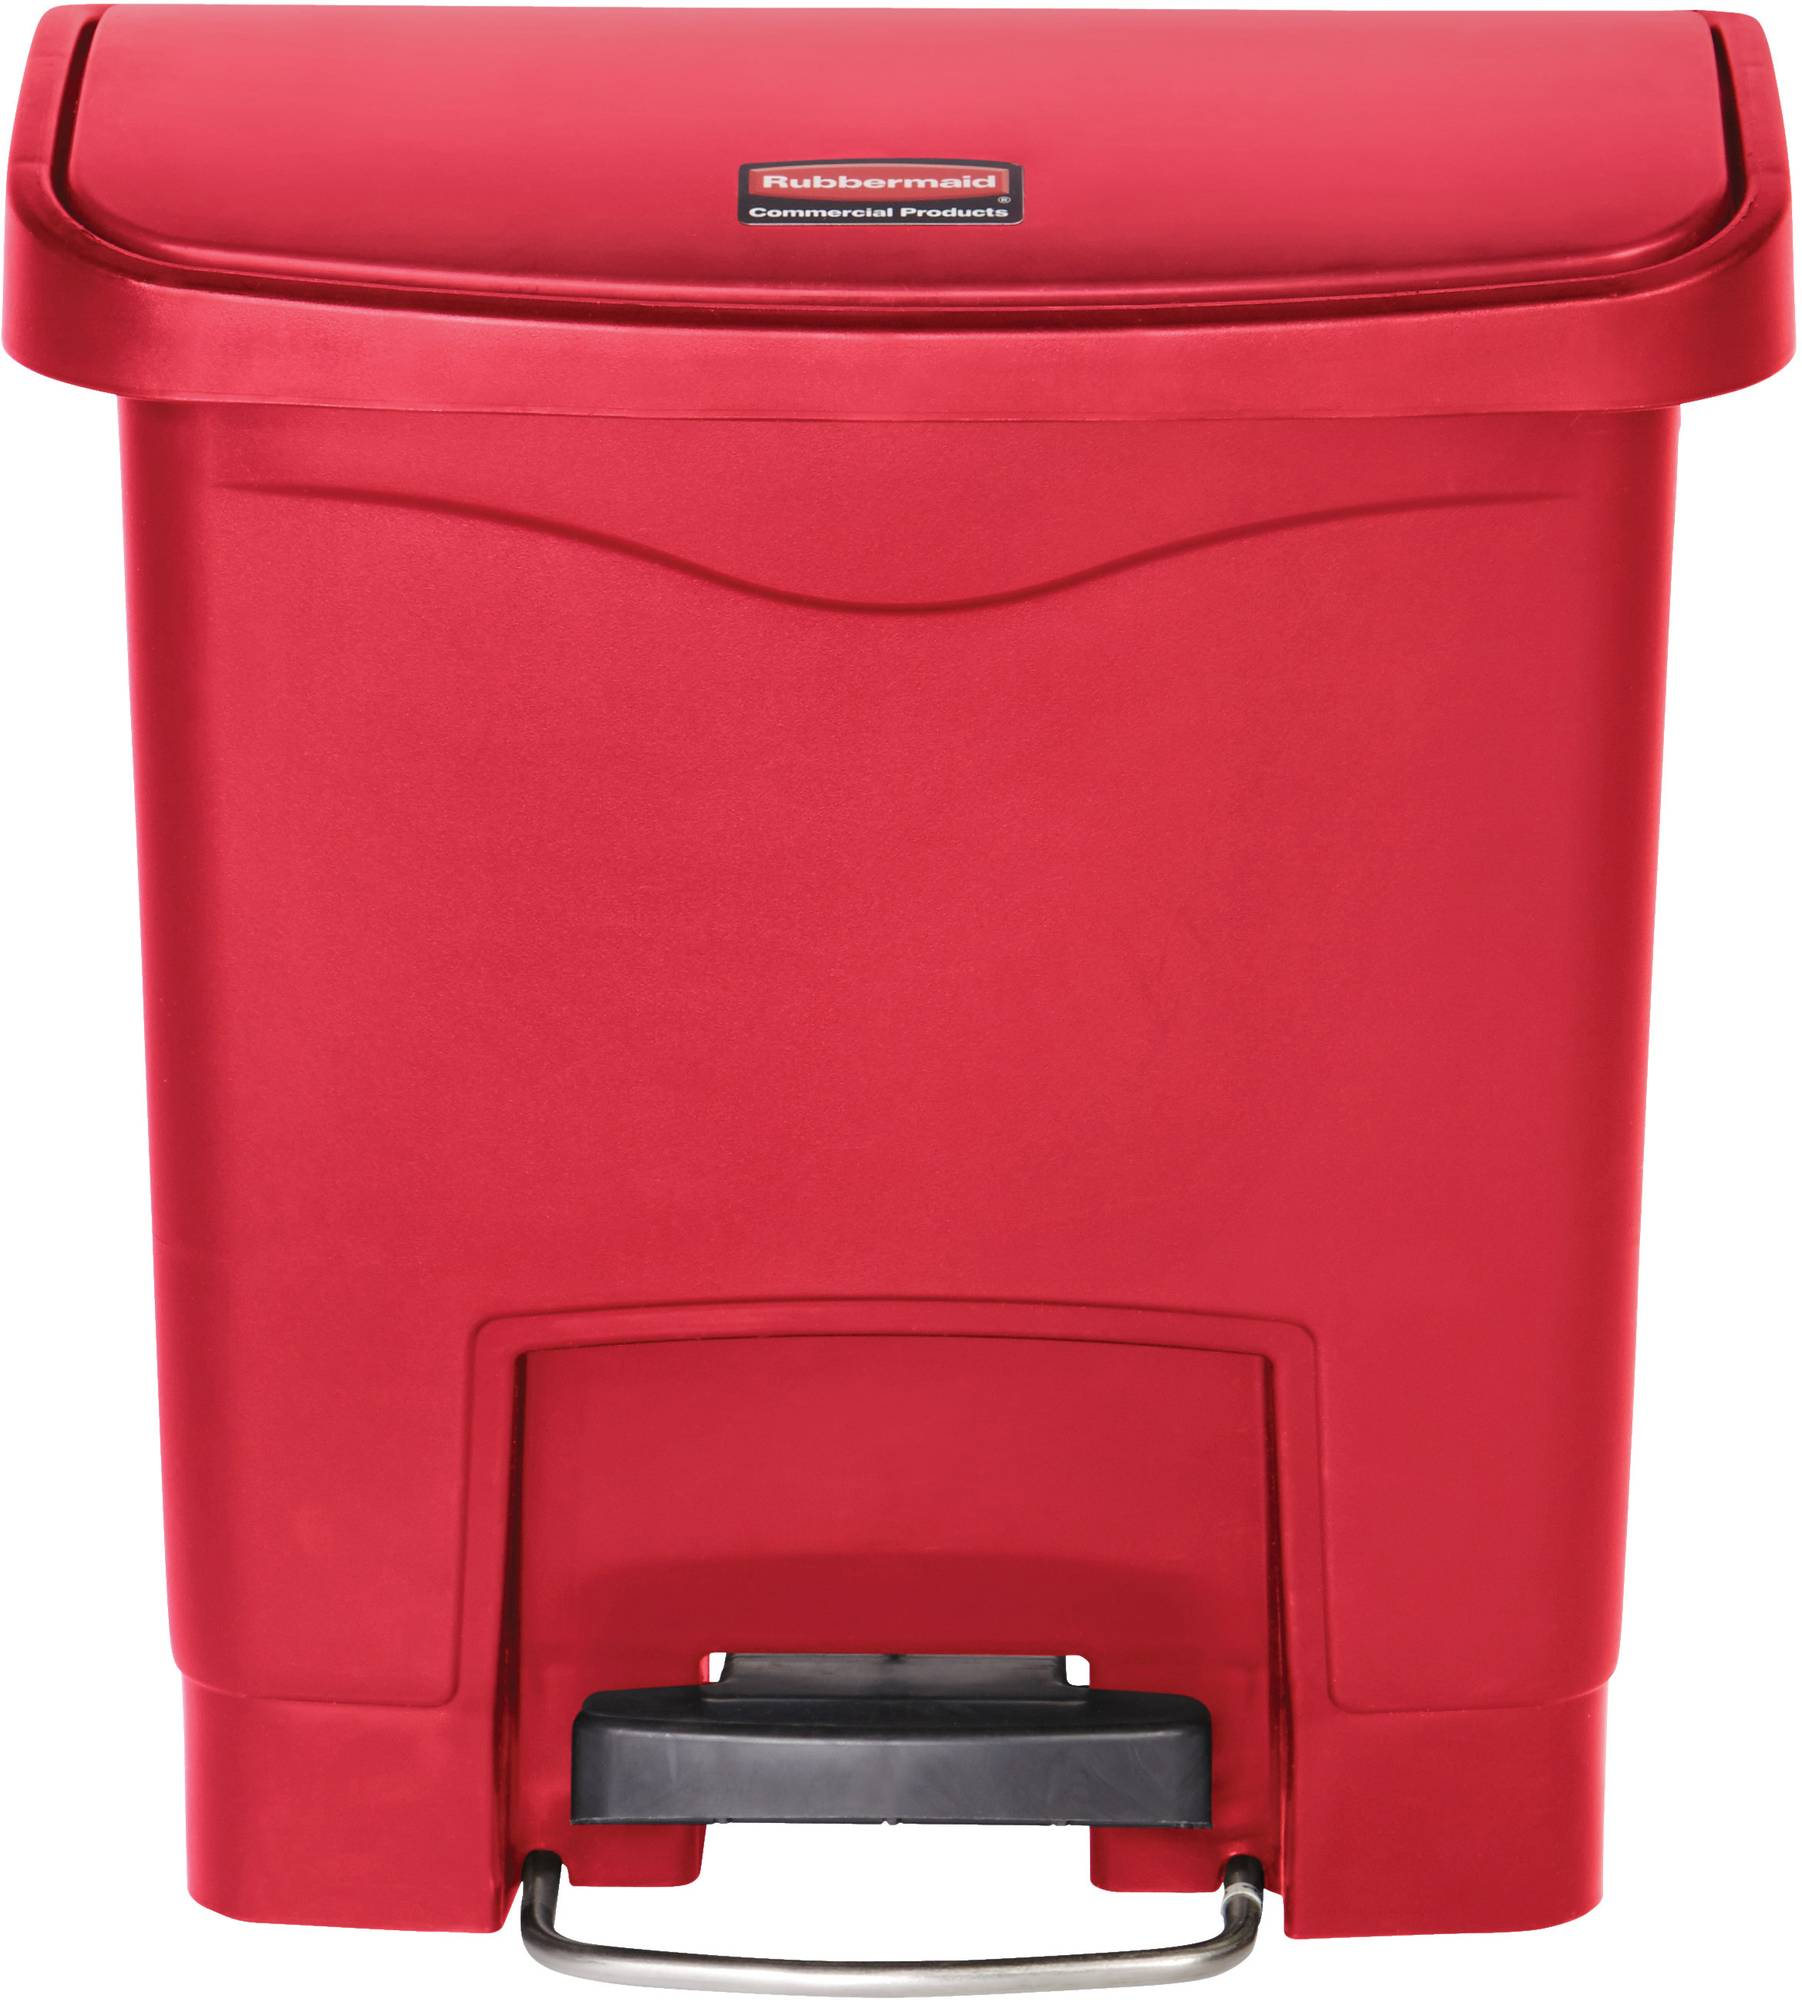 Rubbermaid Slim Jim Step On Container, Front Step mit 15 Liter Füllmenge in Rot, breites Fußpedal